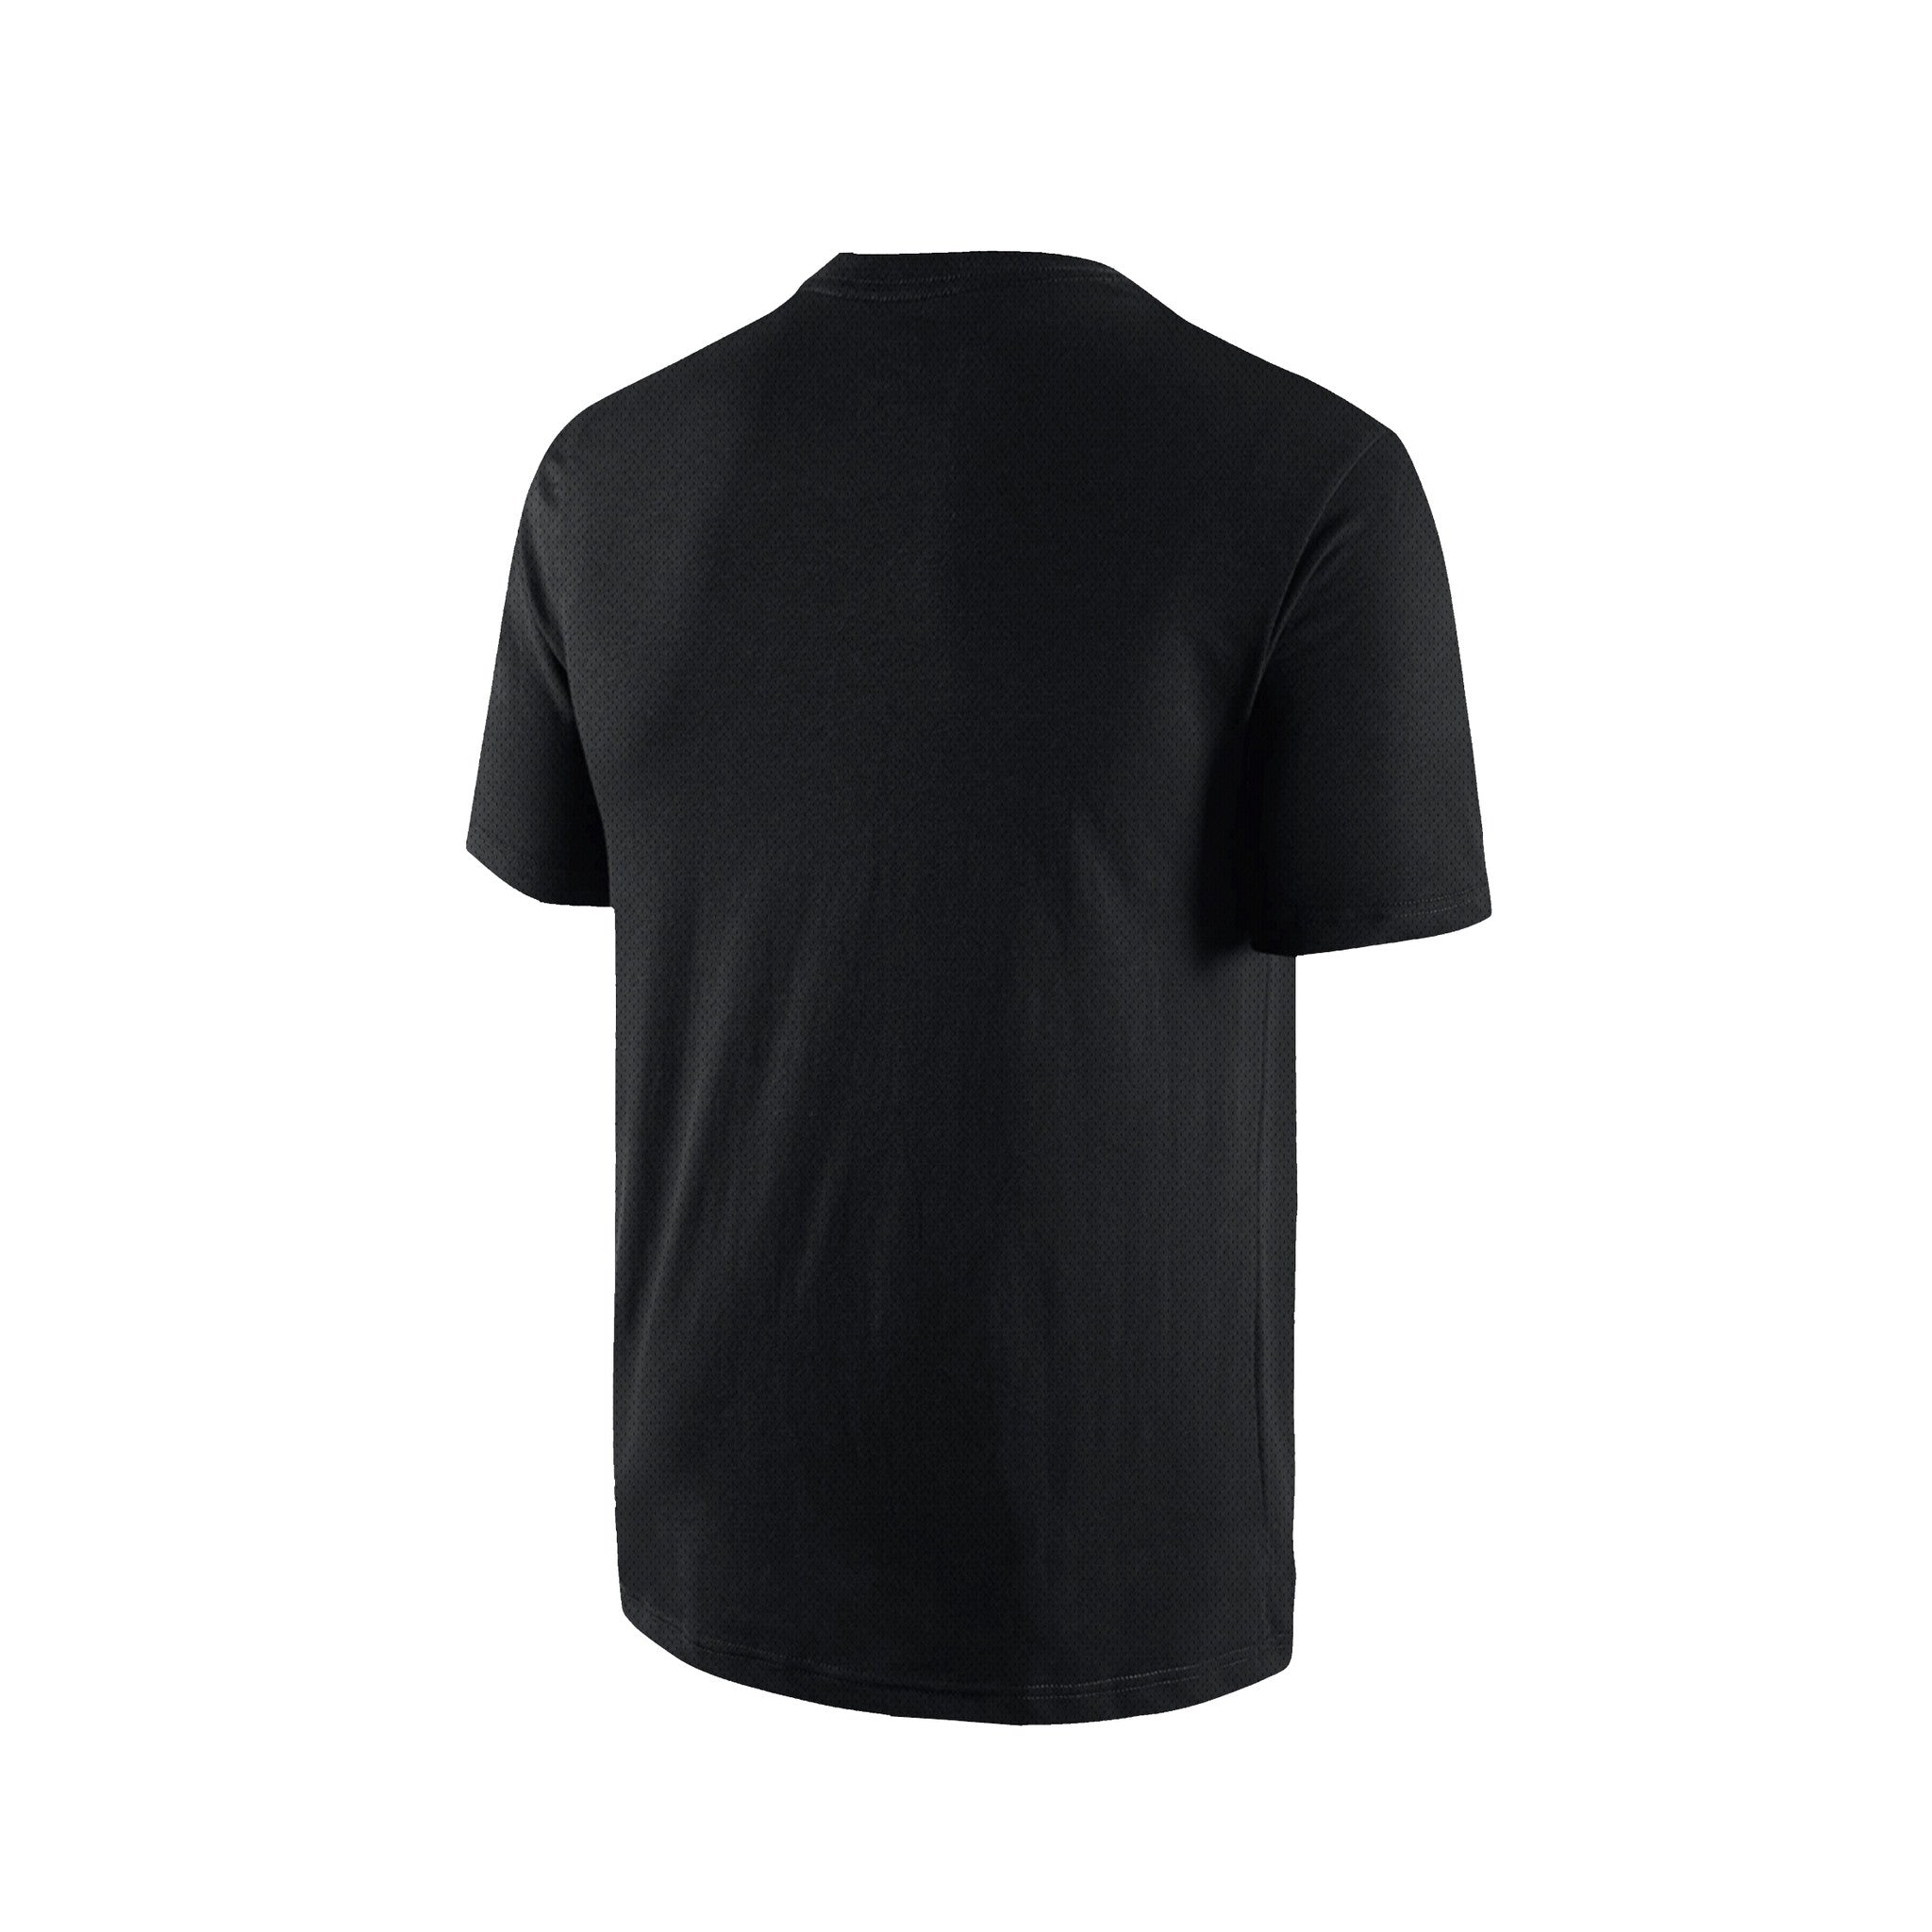 SportyFish Black Series black t-shirt: Black marlin back view